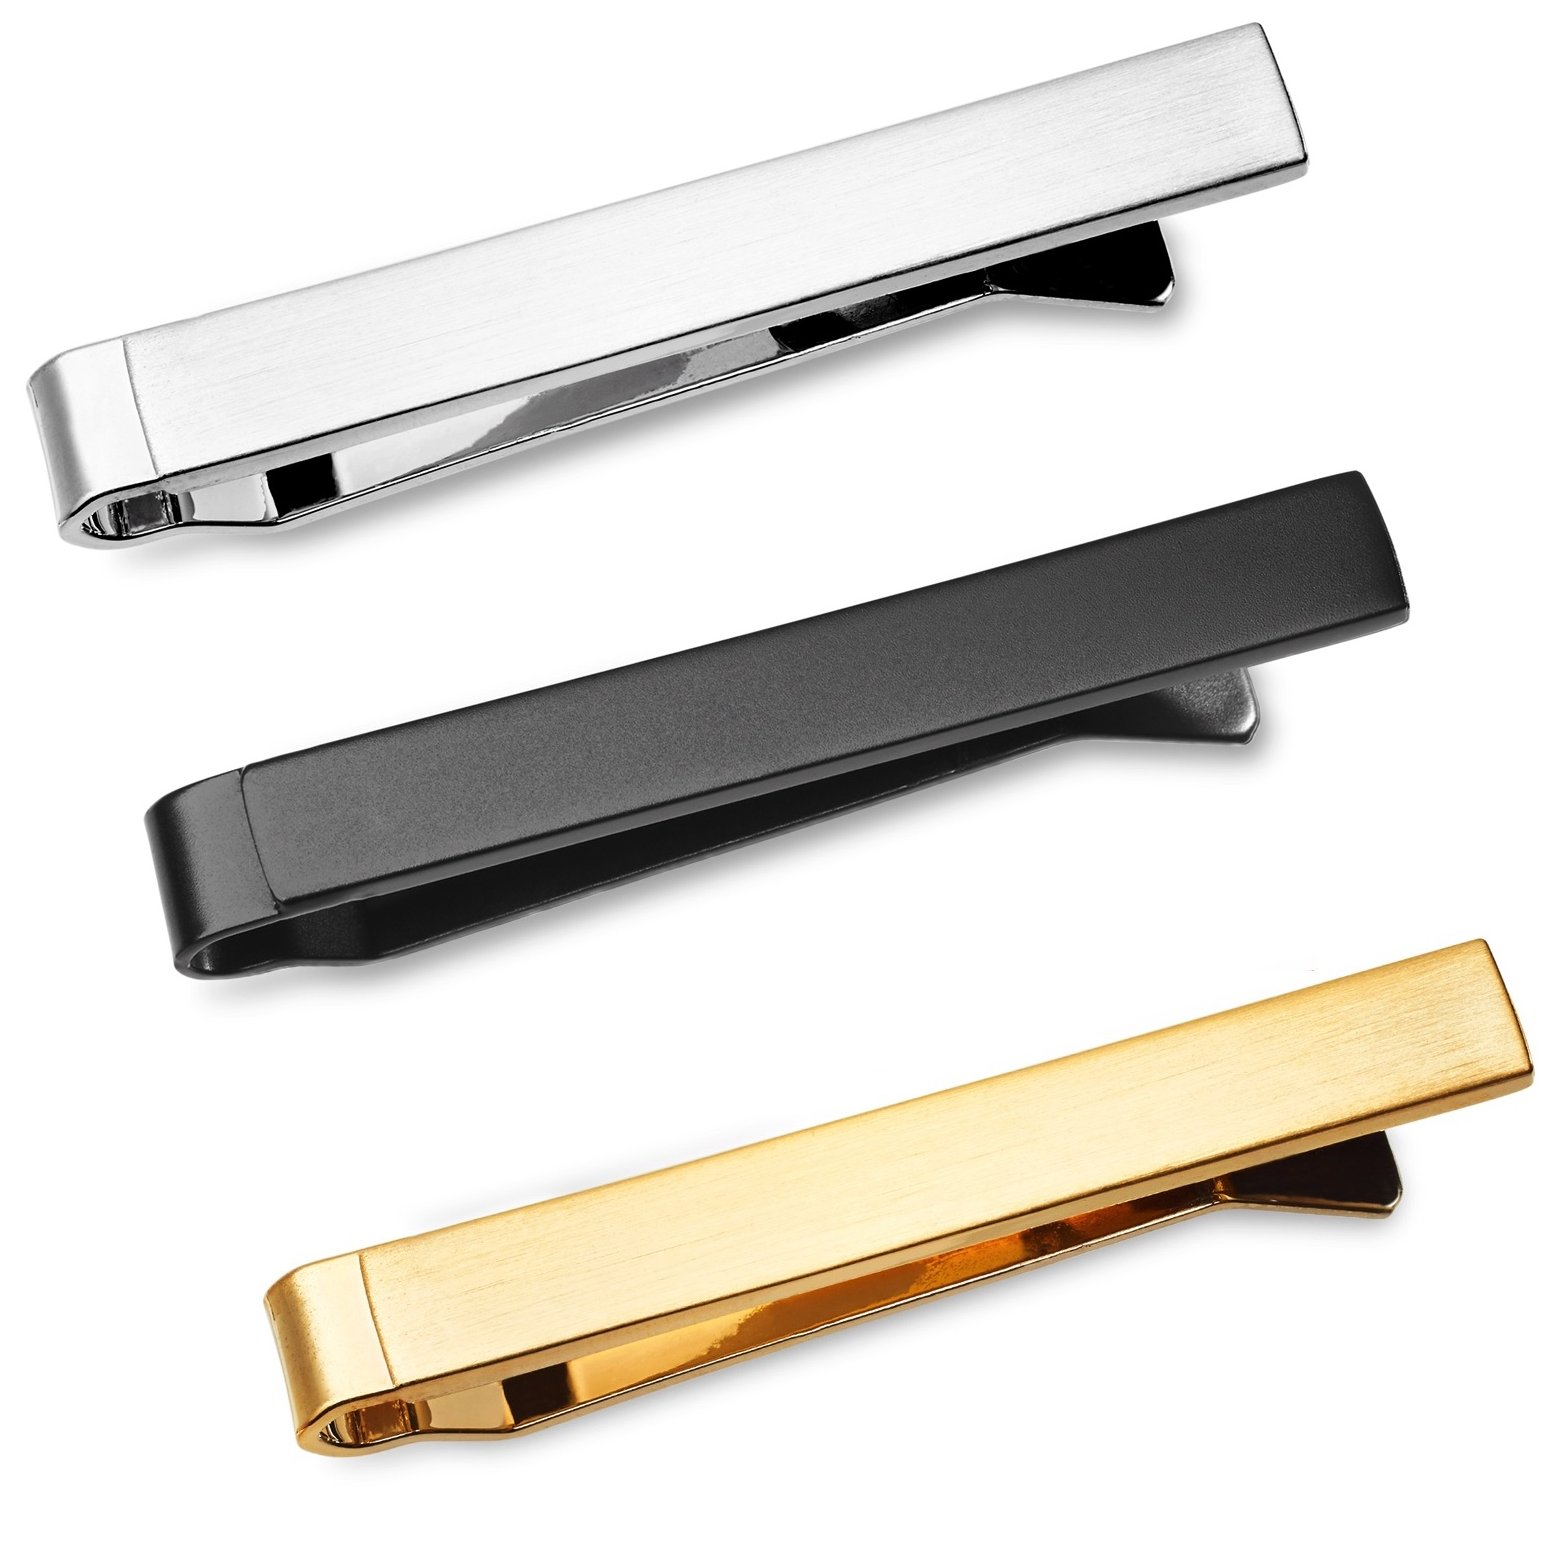 Puentes Denver 3 Pc Mens Tie Bar Slide Clip Set Skinny Ties 1.5 Inch, Brushed Silver, Black, Gold in Gift Box